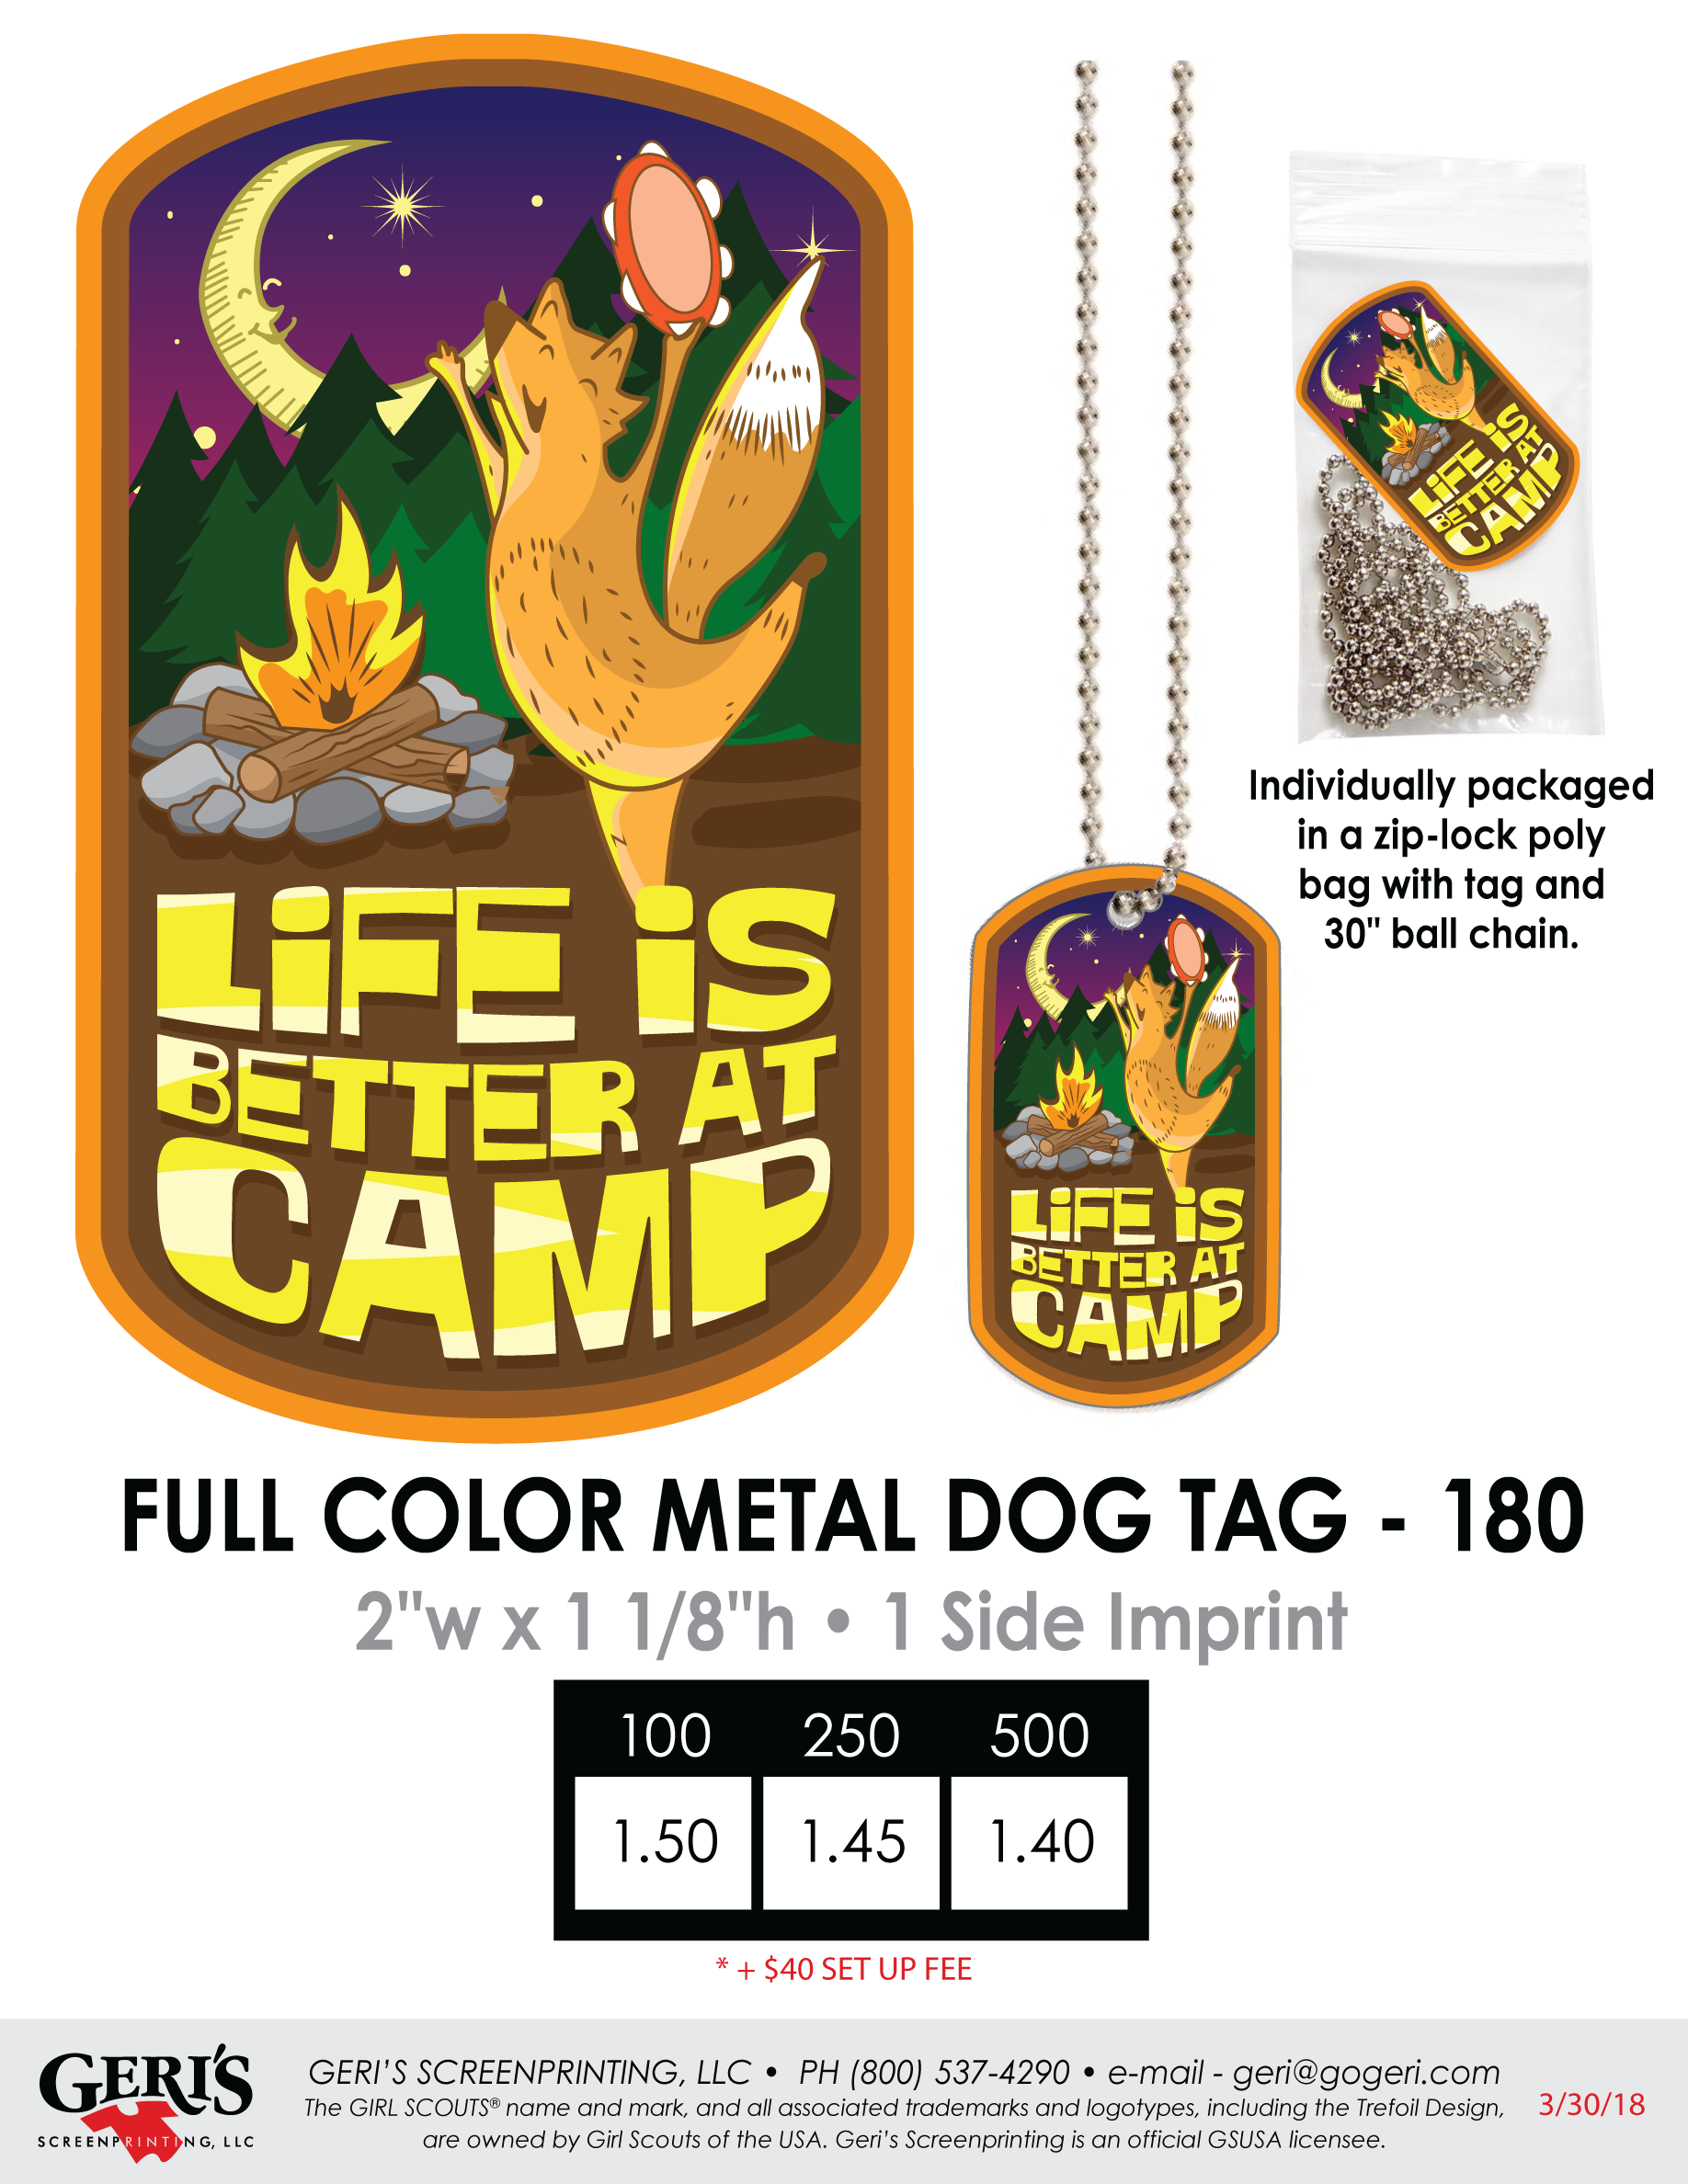 Dog Tag Flyer 18 2.png